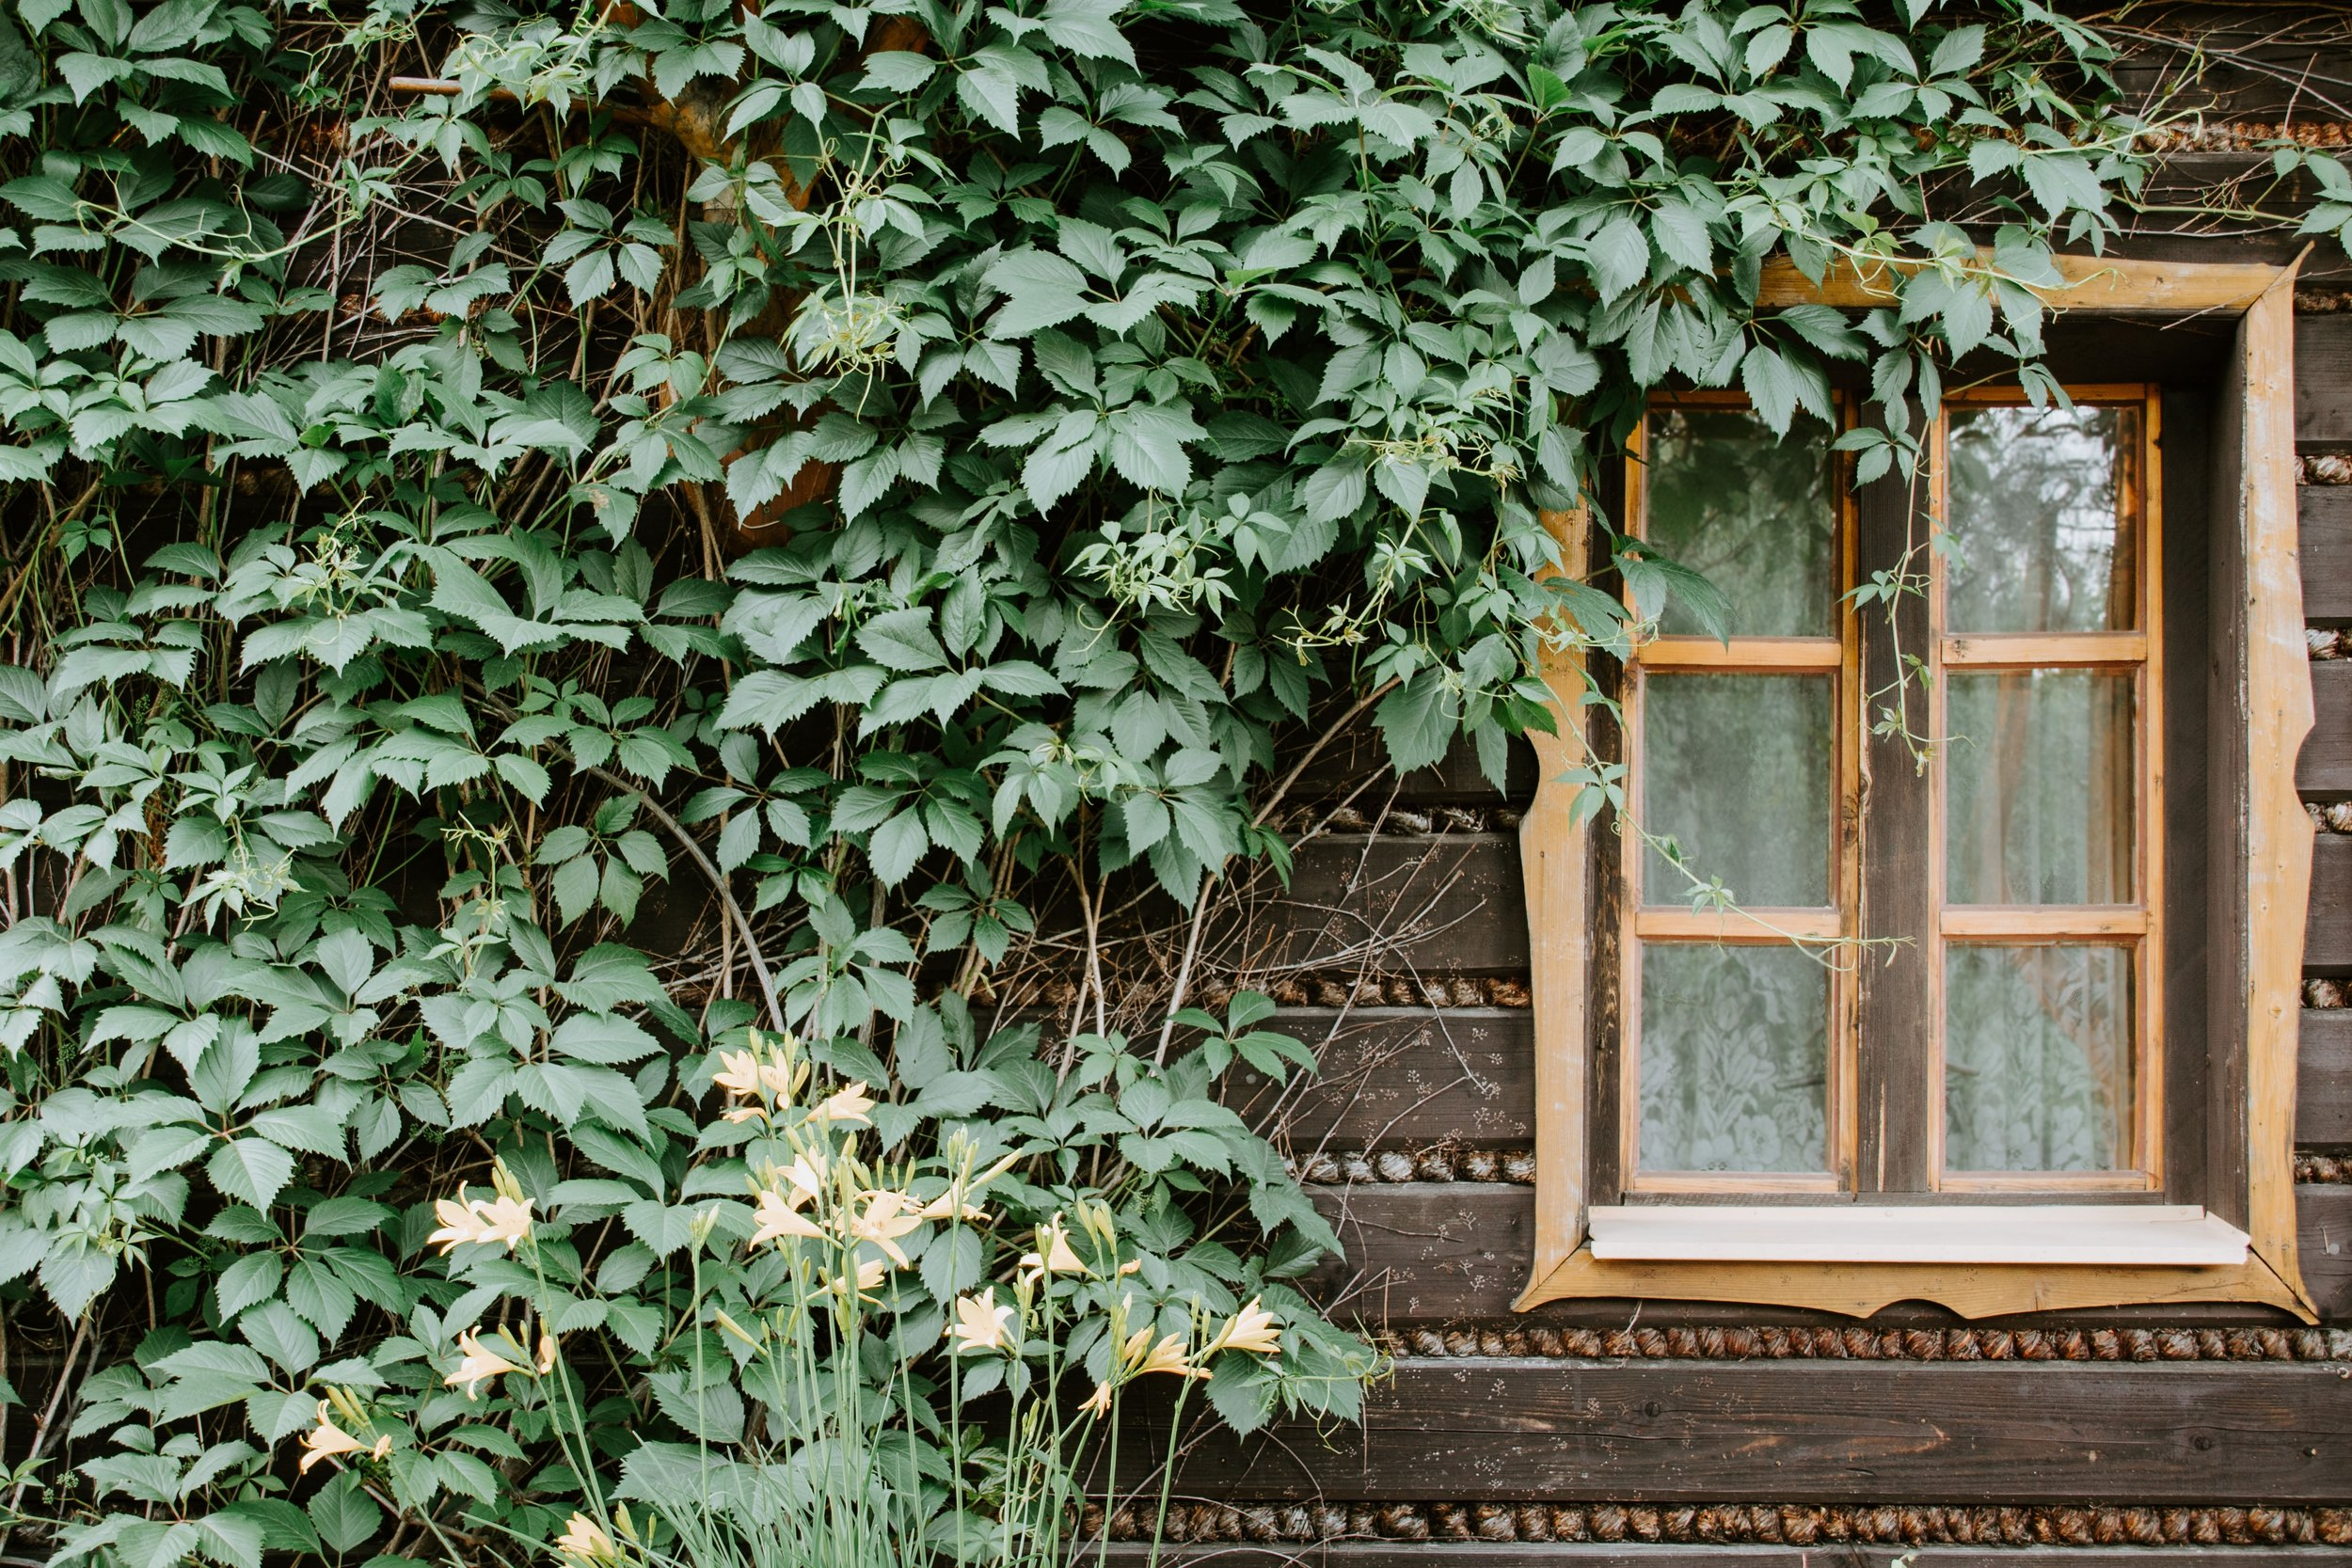 Climbing greenery hangs over this Polish building's window, offering non-rhythmic sensory stimuli each time a breeze ripples the leaves. / Image by    Pawet Czerwinski via Unsplash